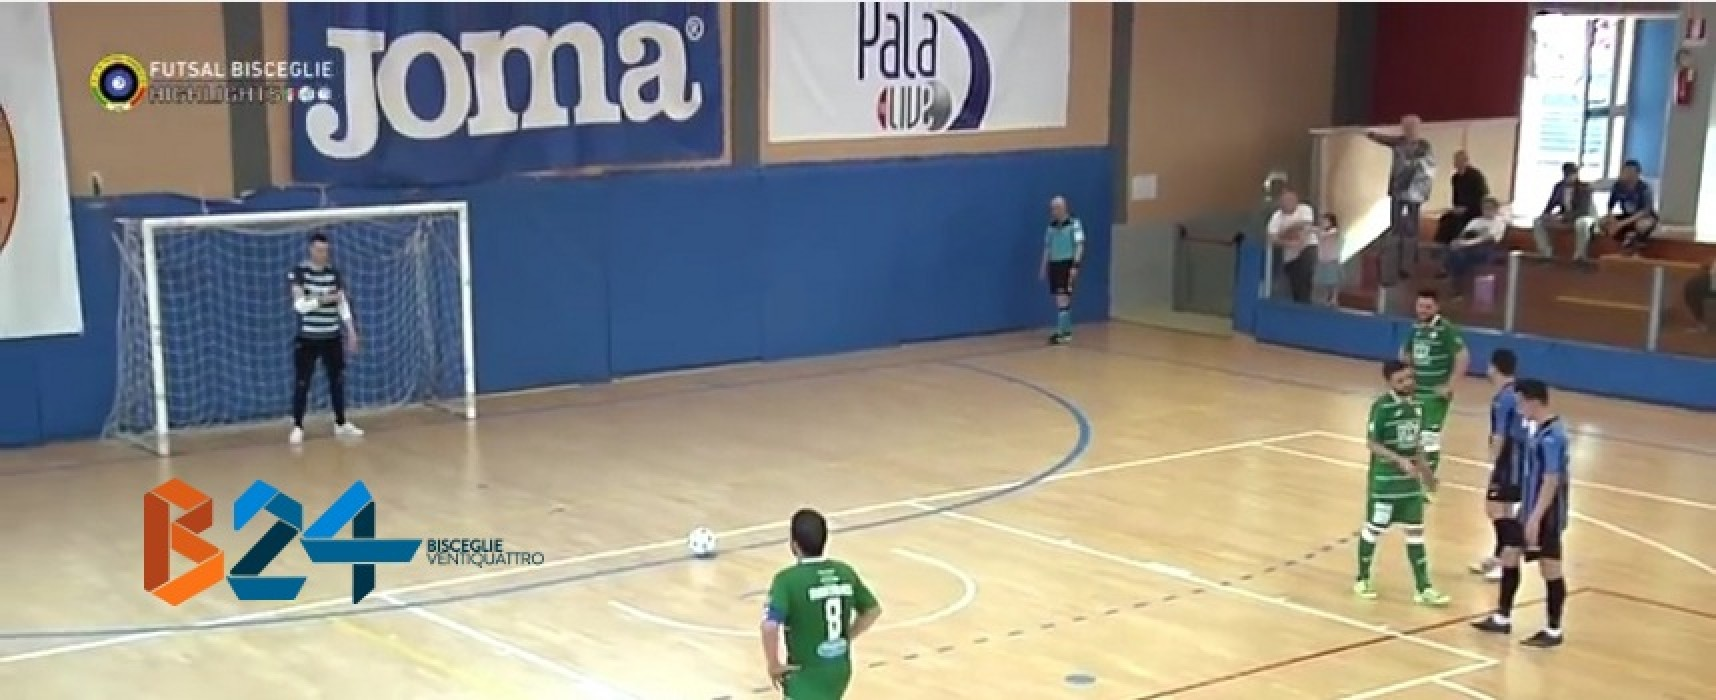 Futsal Isola-Futsal Bisceglie 3-4 / VIDEO HIGHLIGHTS